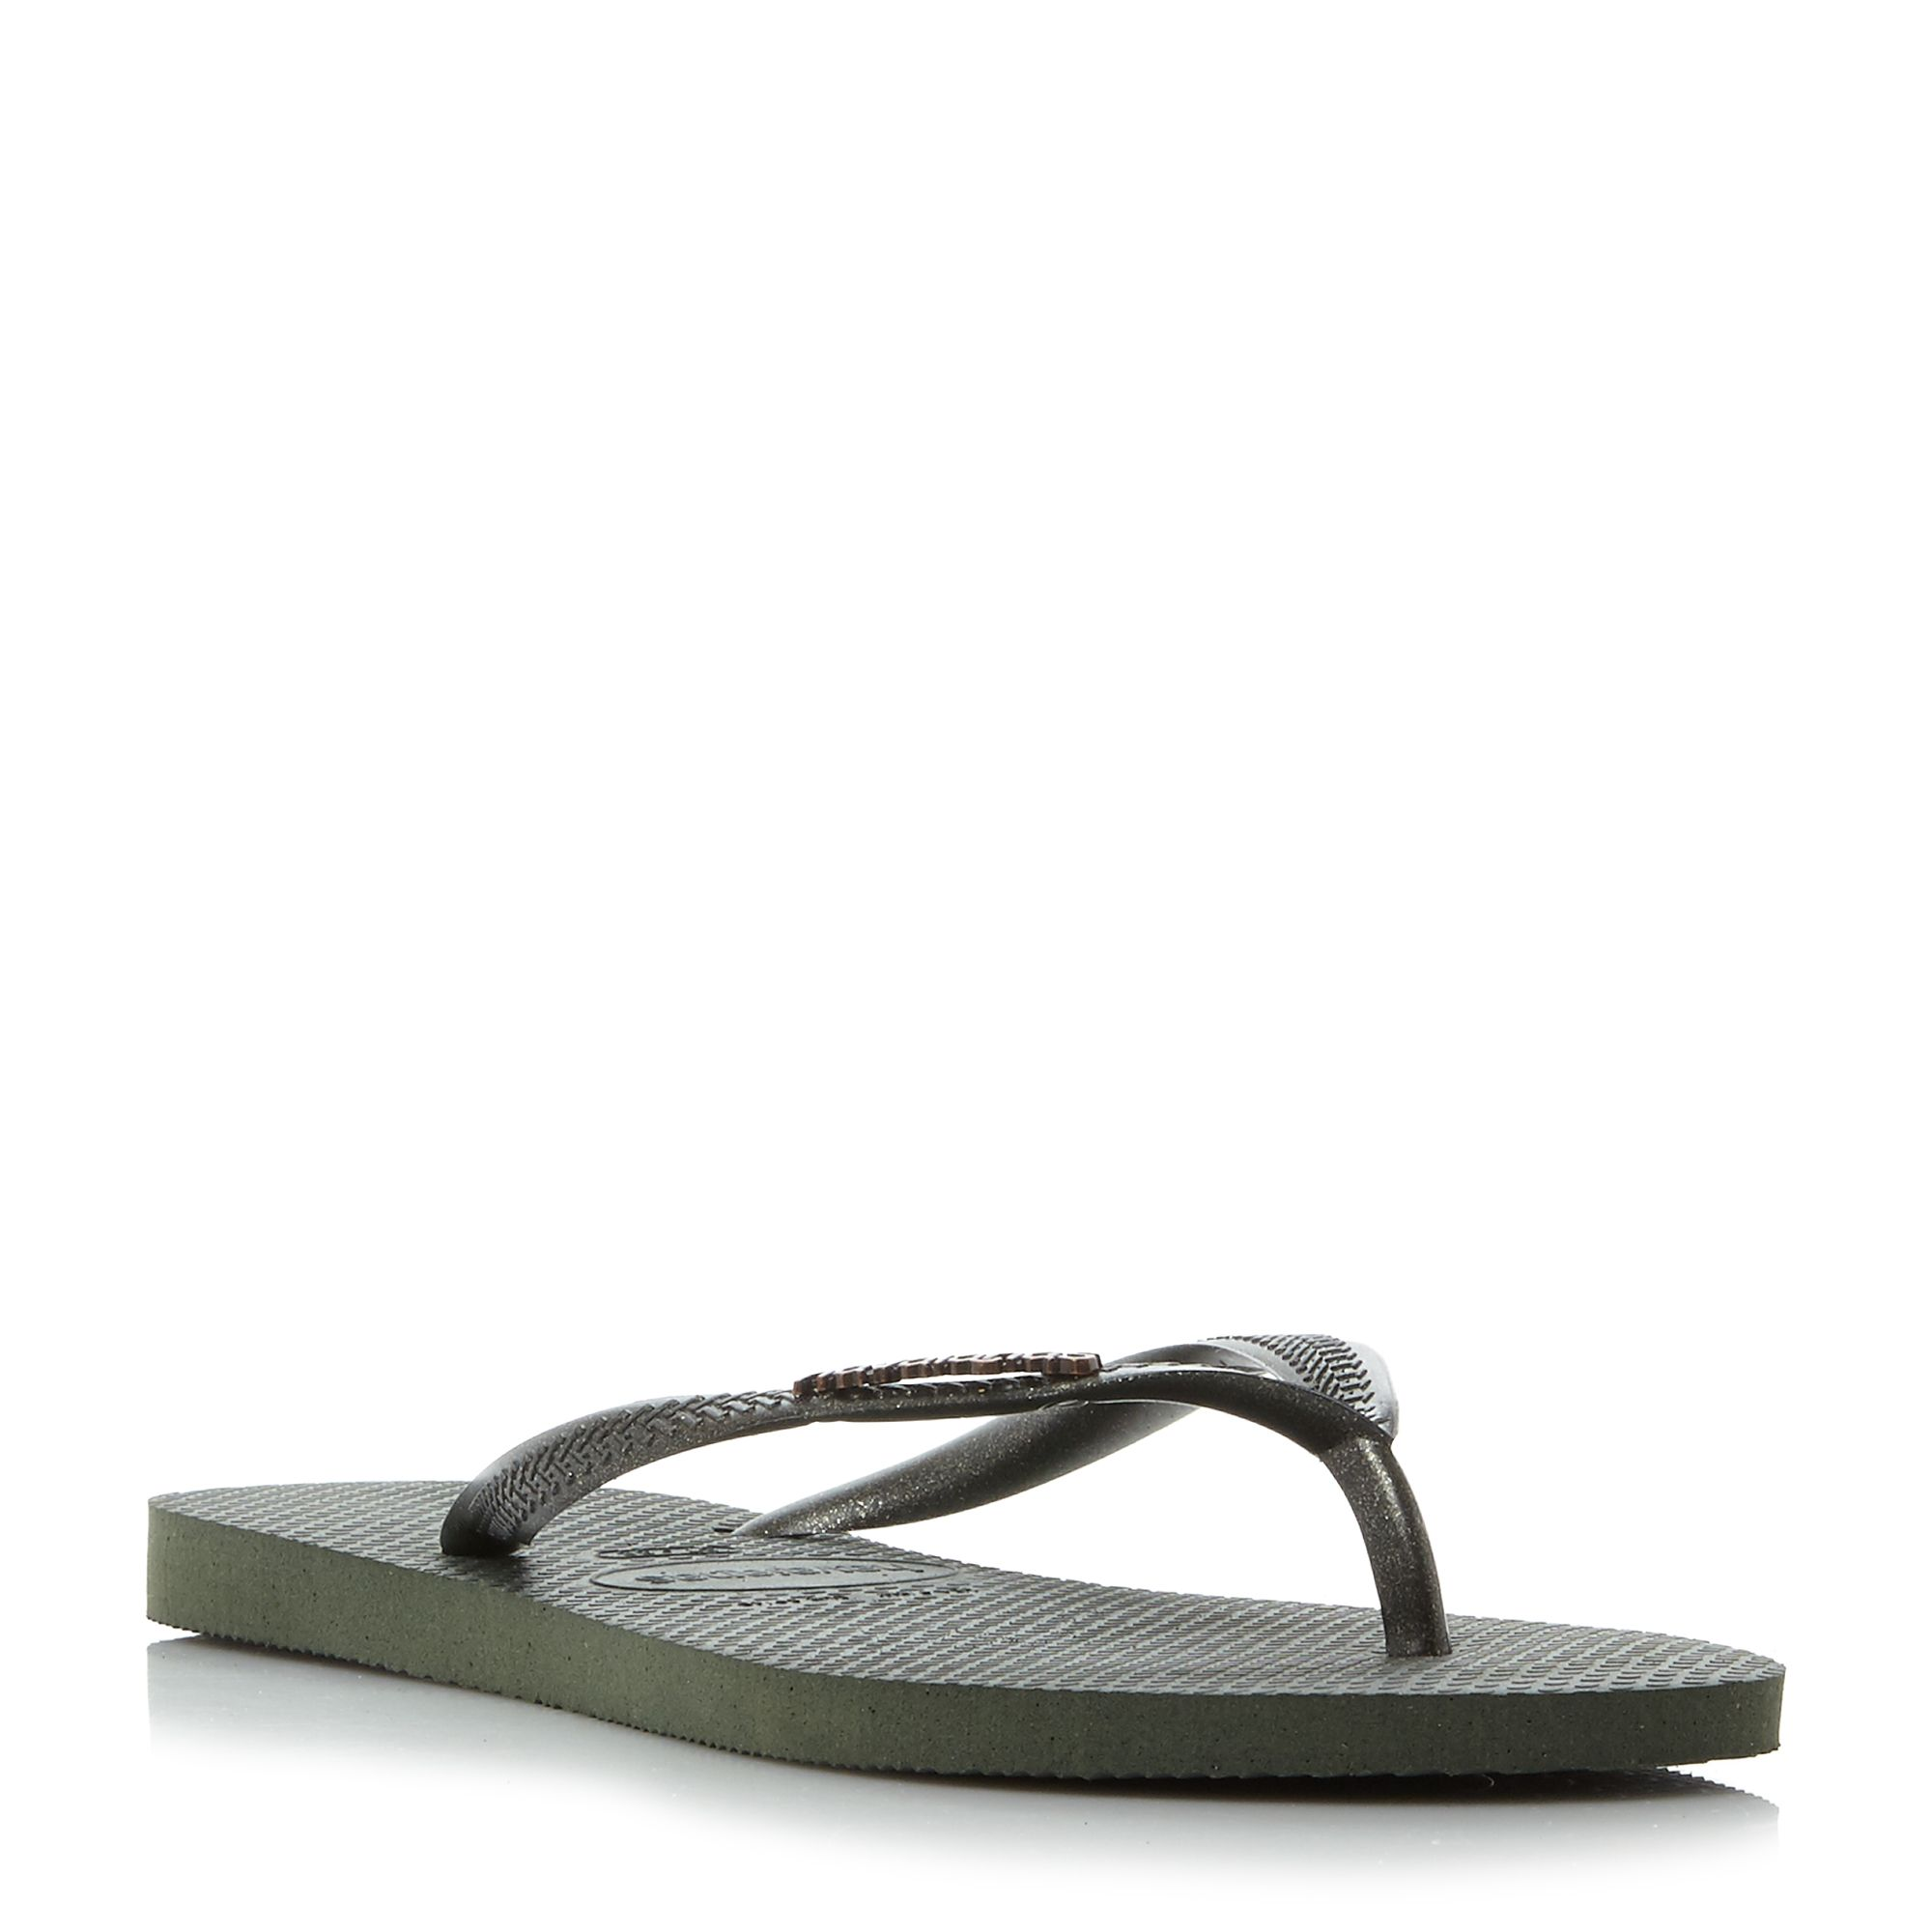 Buy cheap green flip flops compare women 39 s footwear for How to find cheap houses to flip